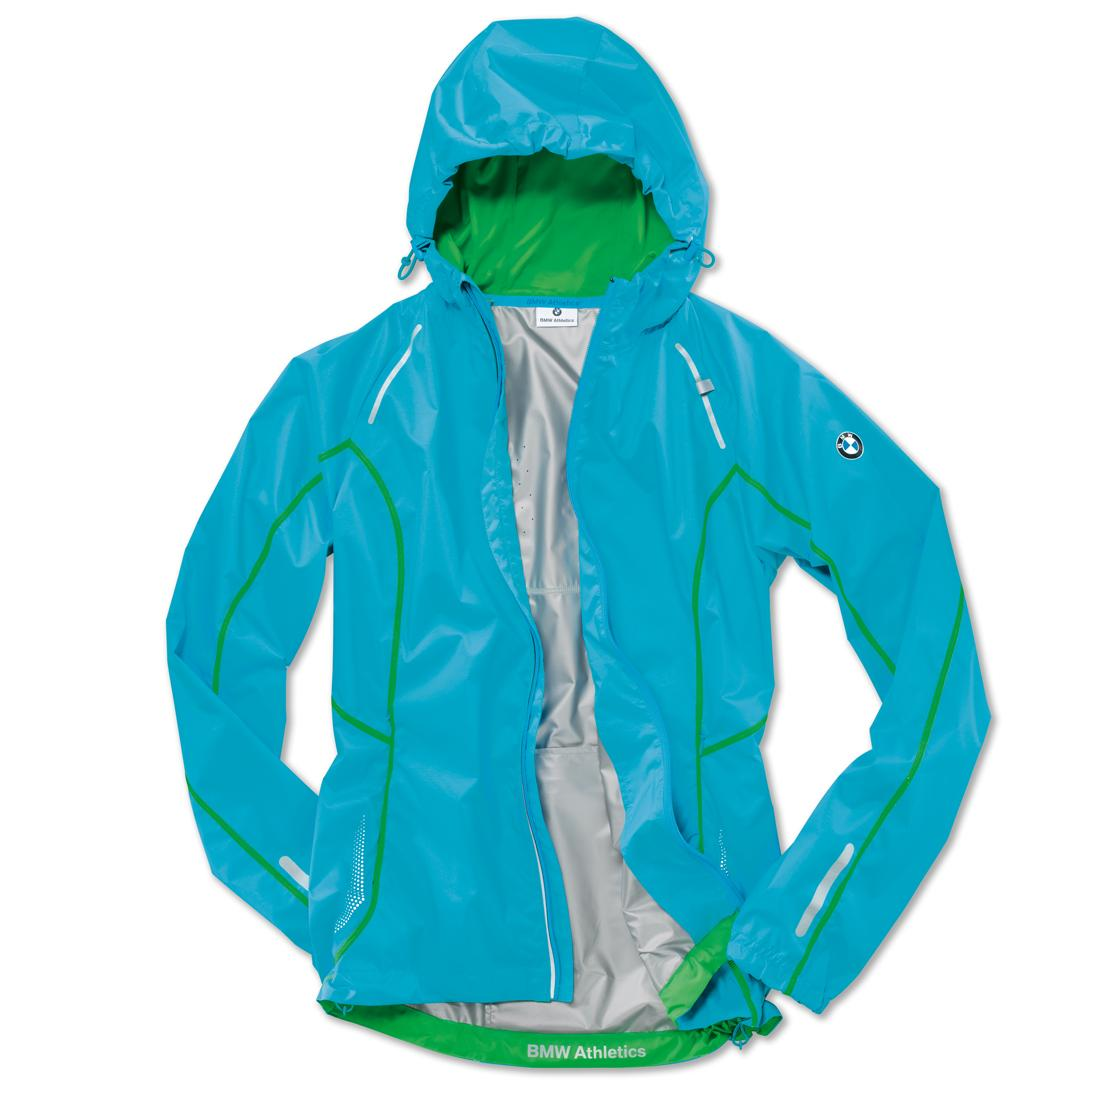 BMW Athletics Ladies' Wind Jacket